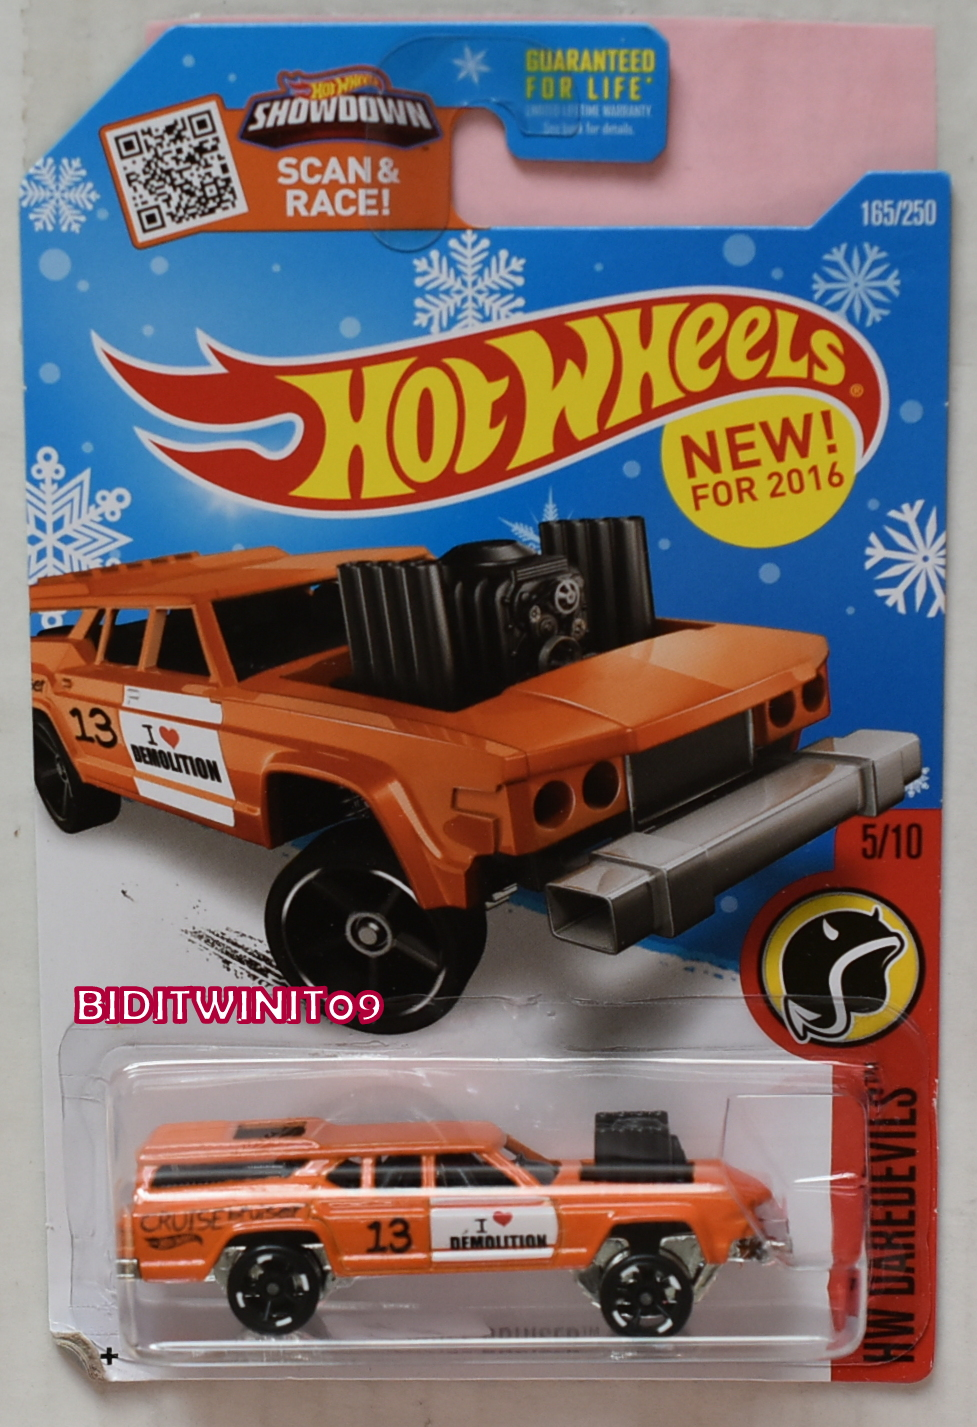 HOT WHEELS 2016 HW DAREDEVILS CRUISE BRUISER SNOW CARD - Click Image to Close